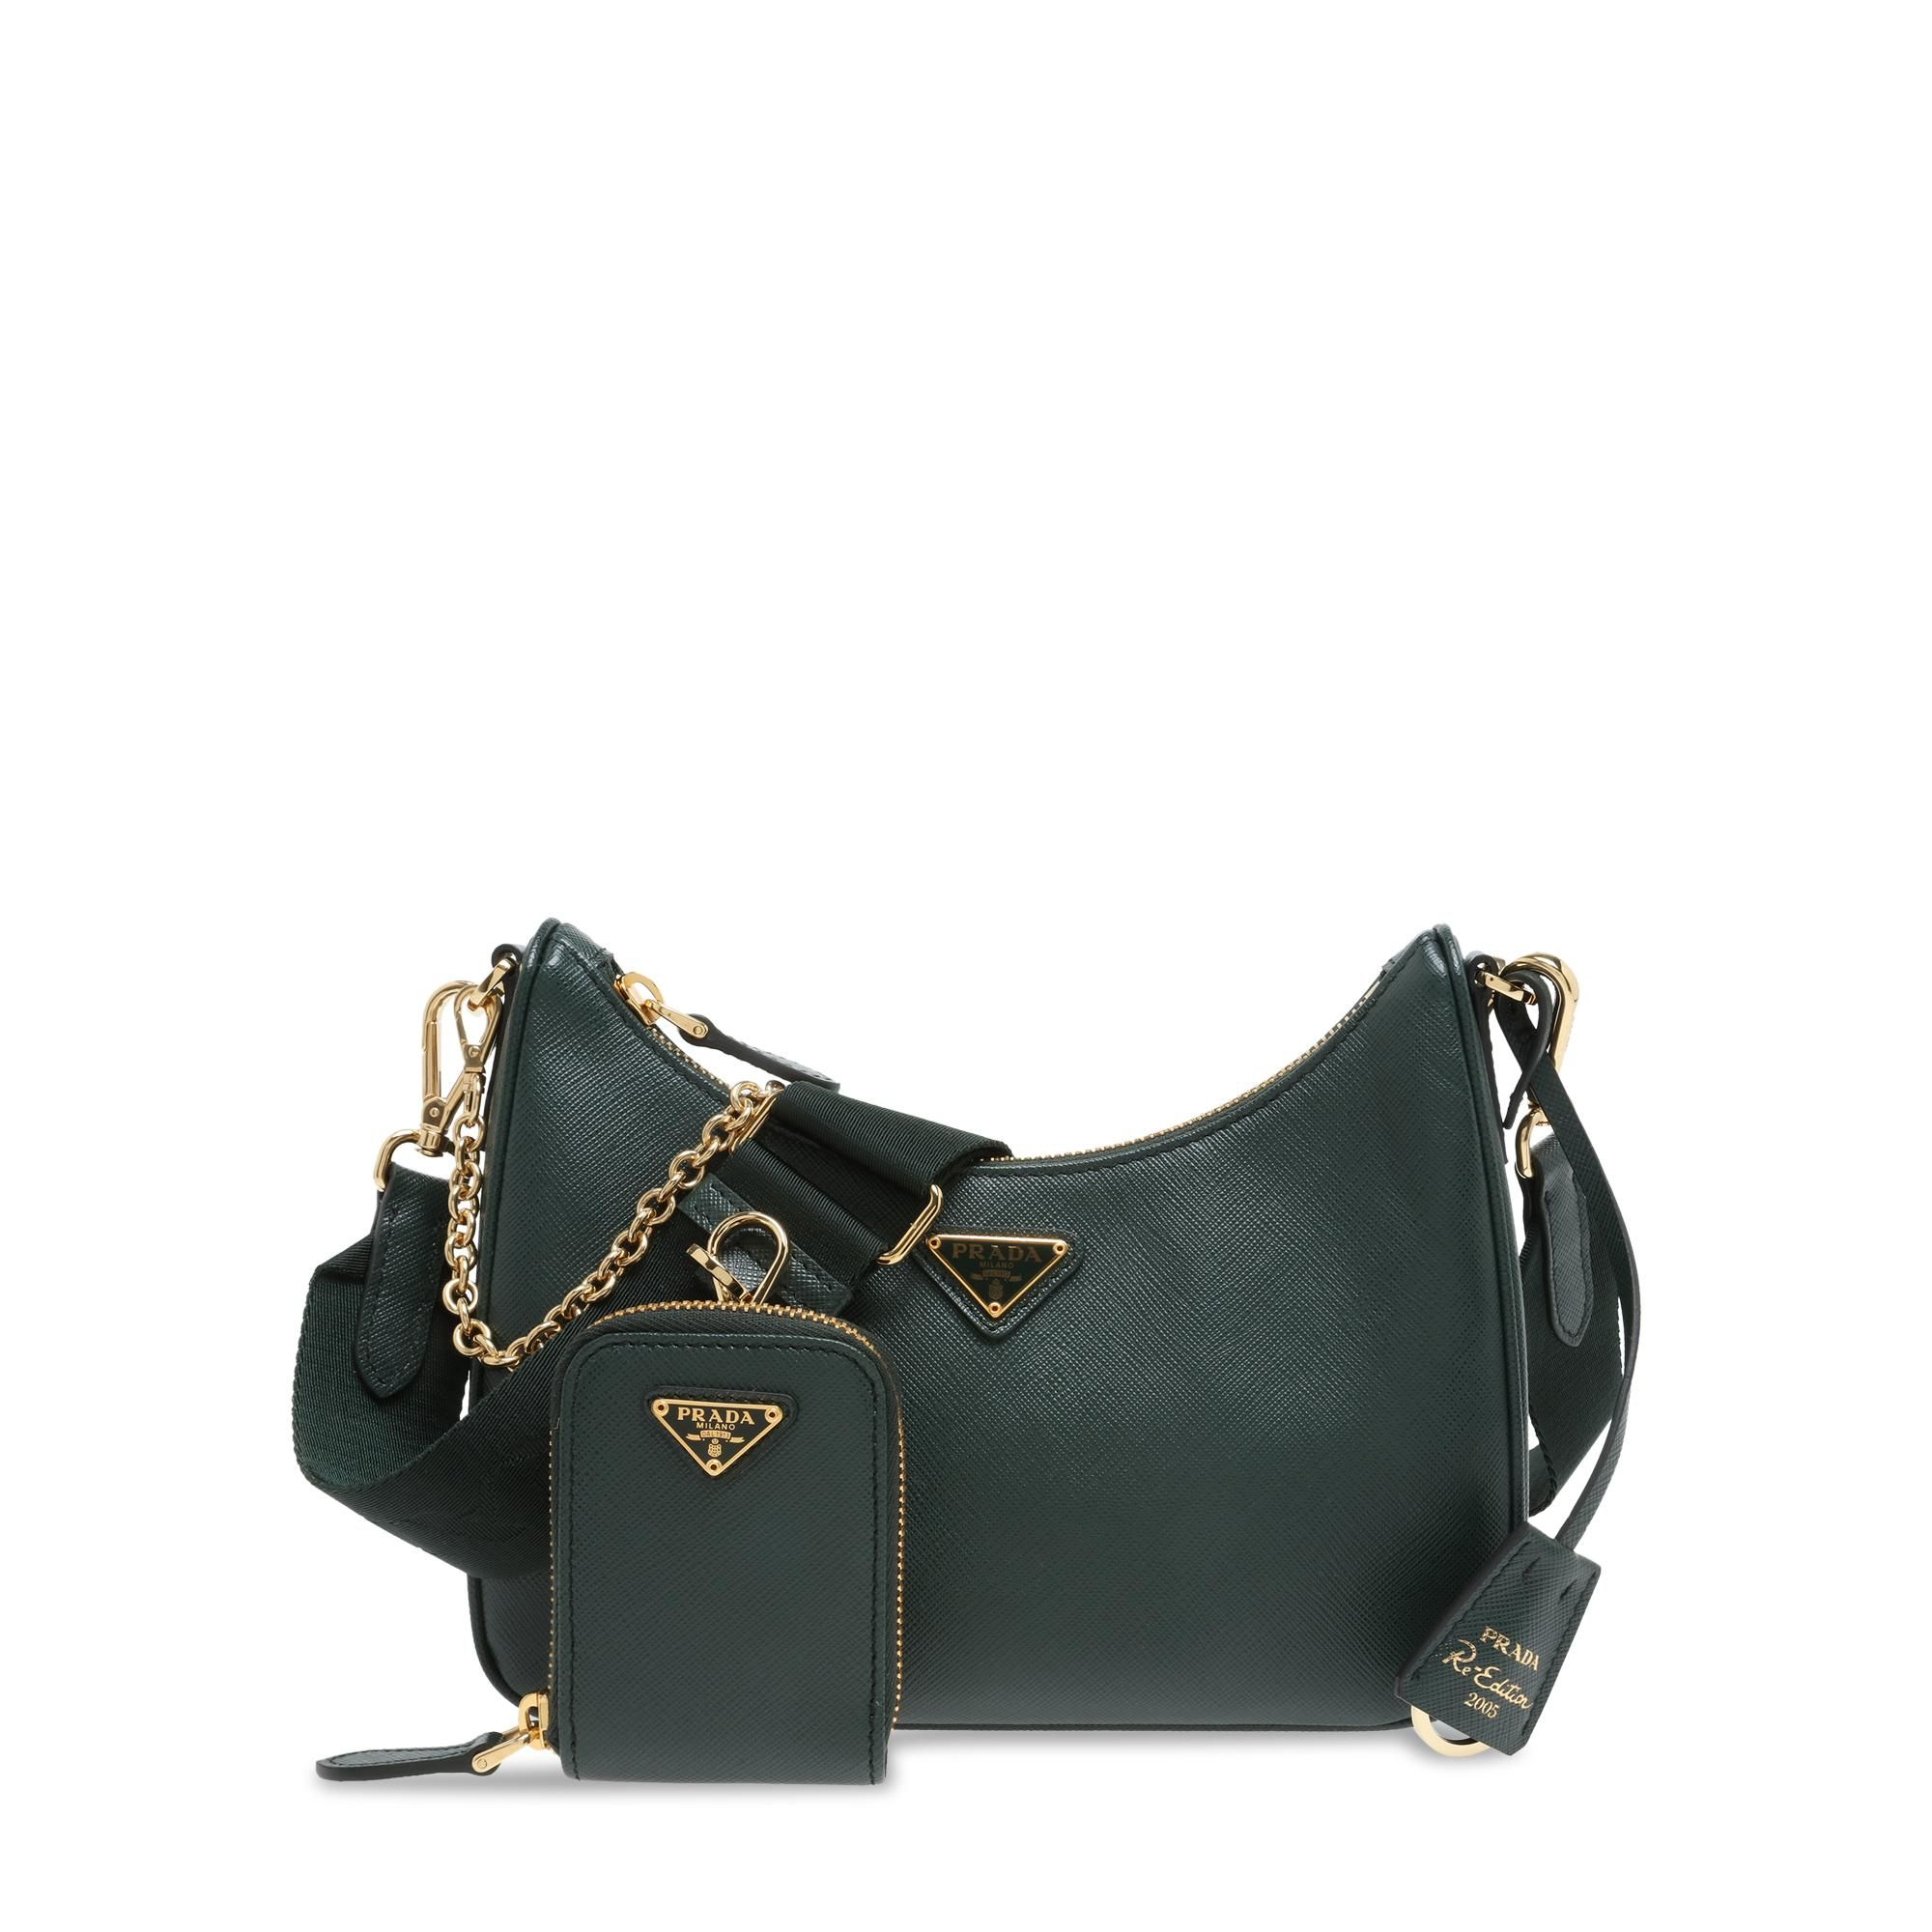 Re-Edition leather bag